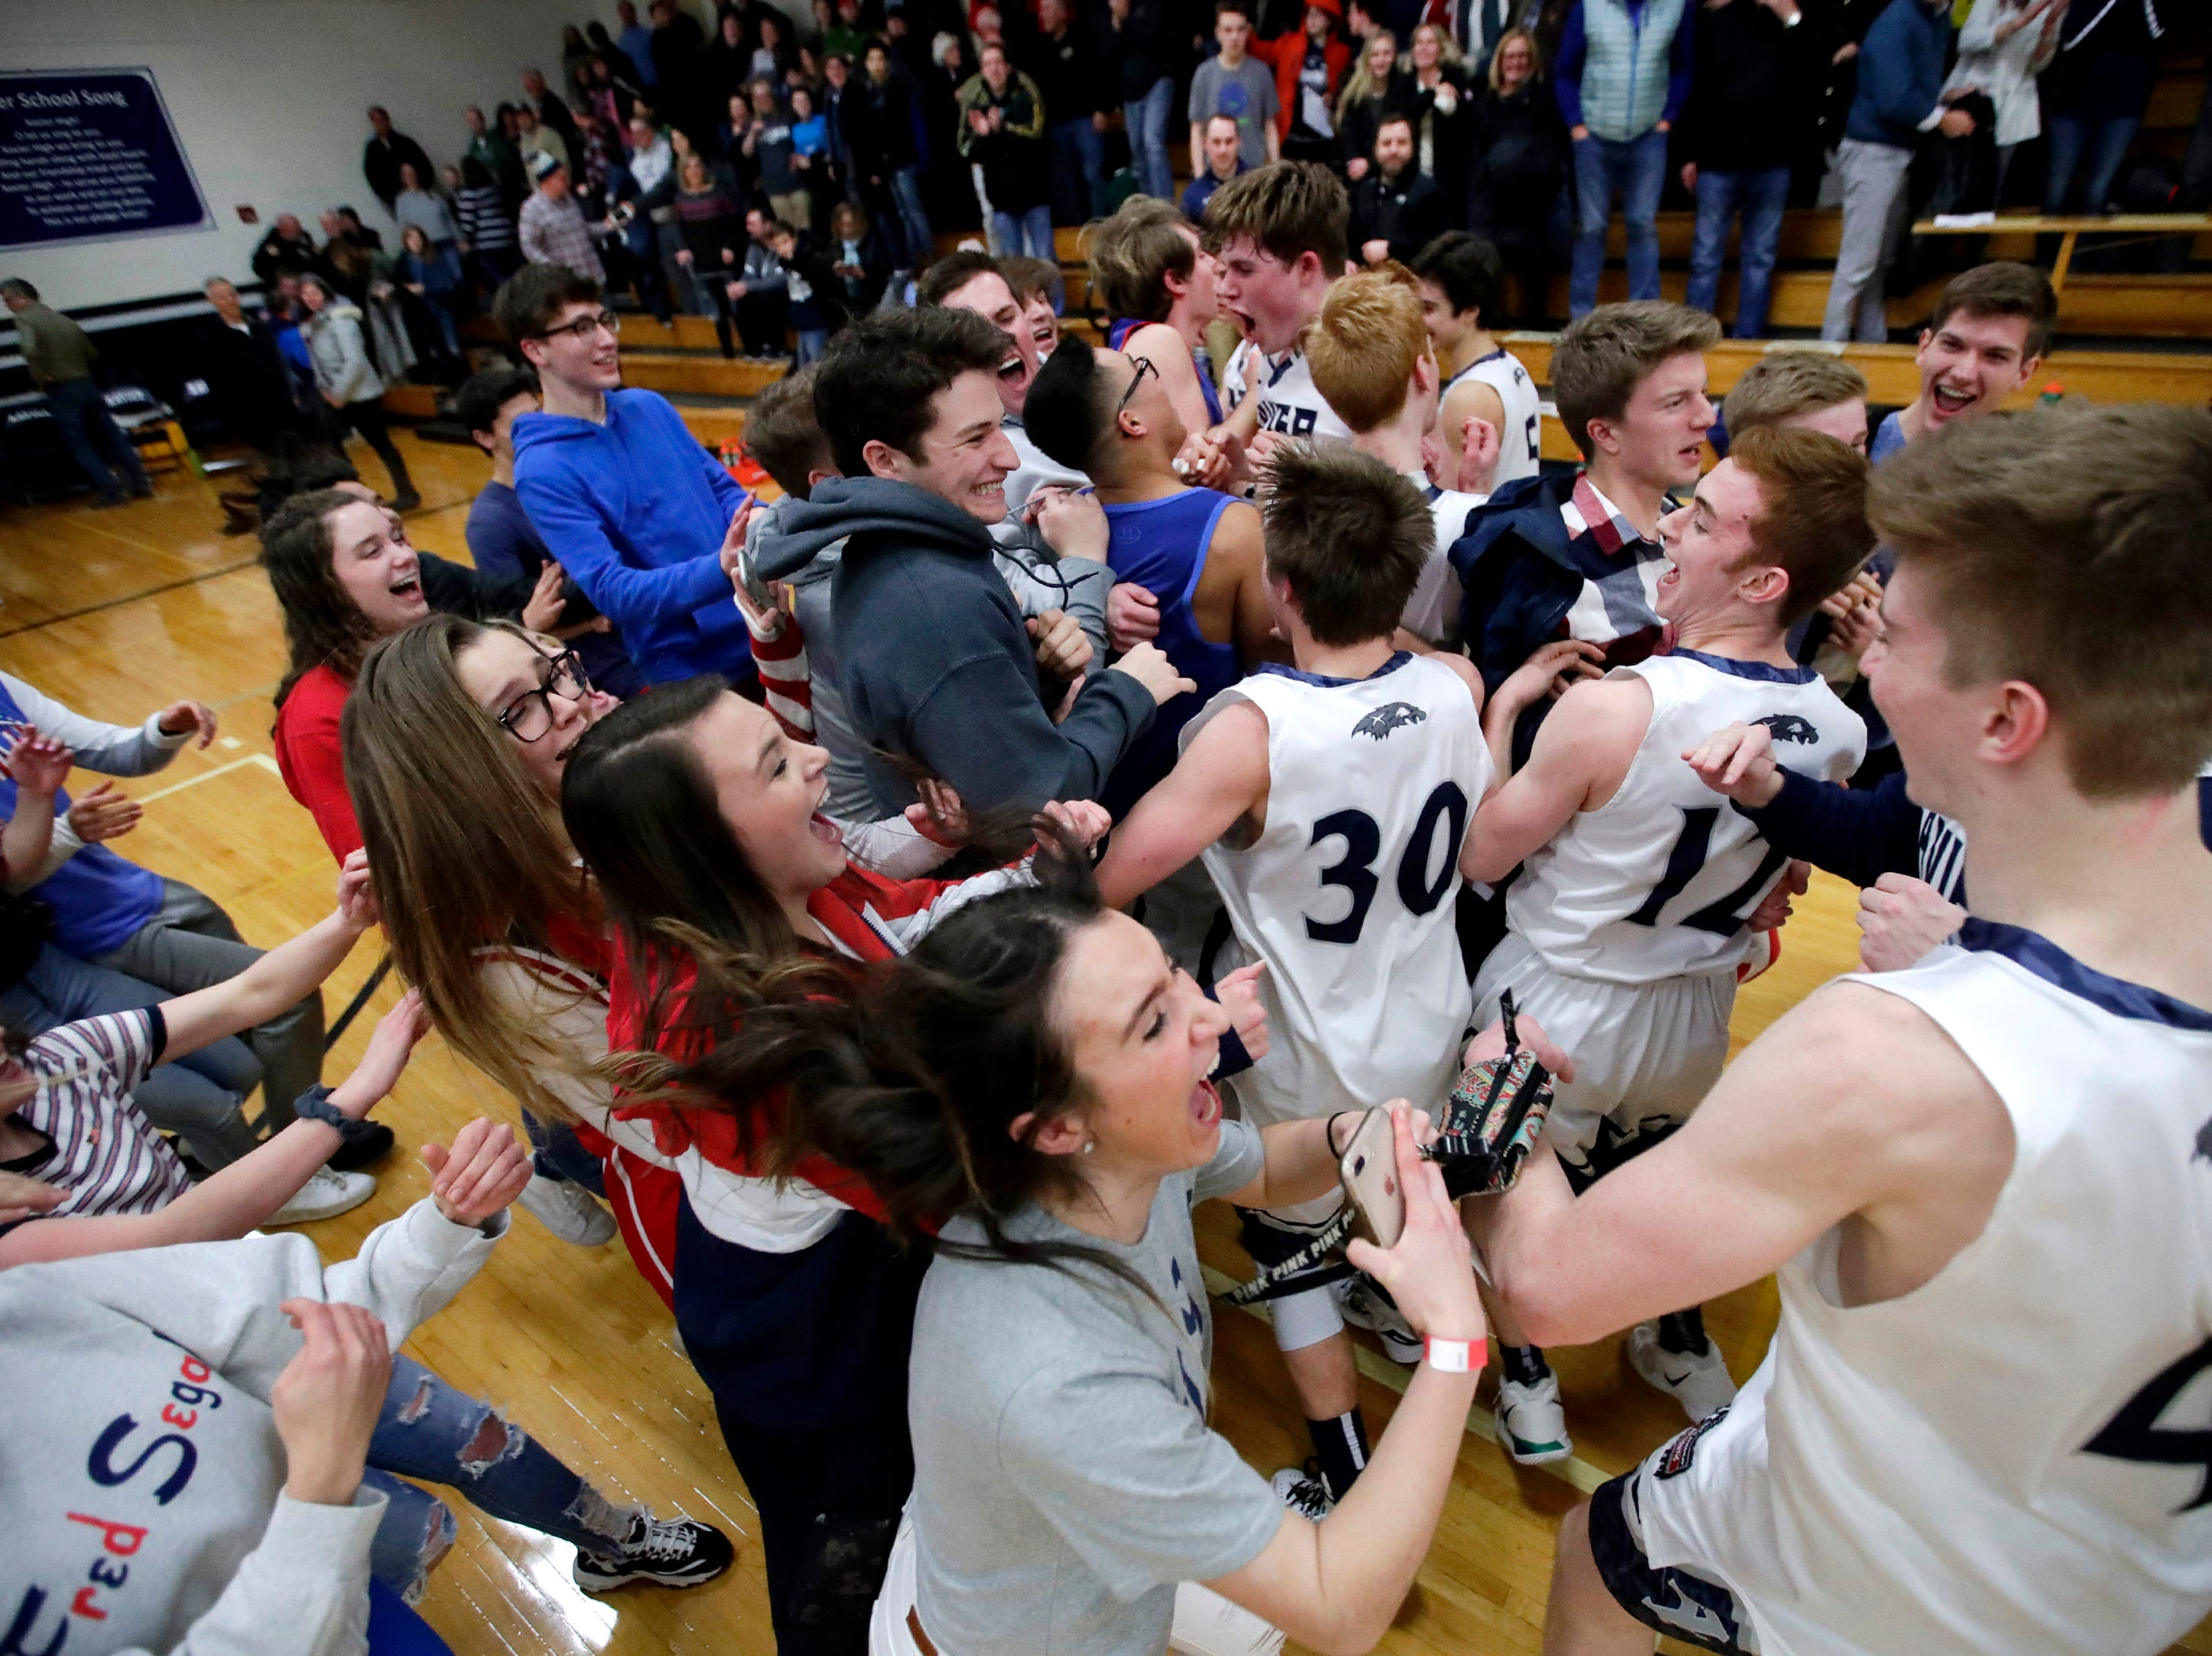 Xavier High School fans and players collide after their 92-50 win over Seymour High School Friday, Feb. 8, 2019, in Appleton, Wis.Danny Damiani/USA TODAY NETWORK-Wisconsin